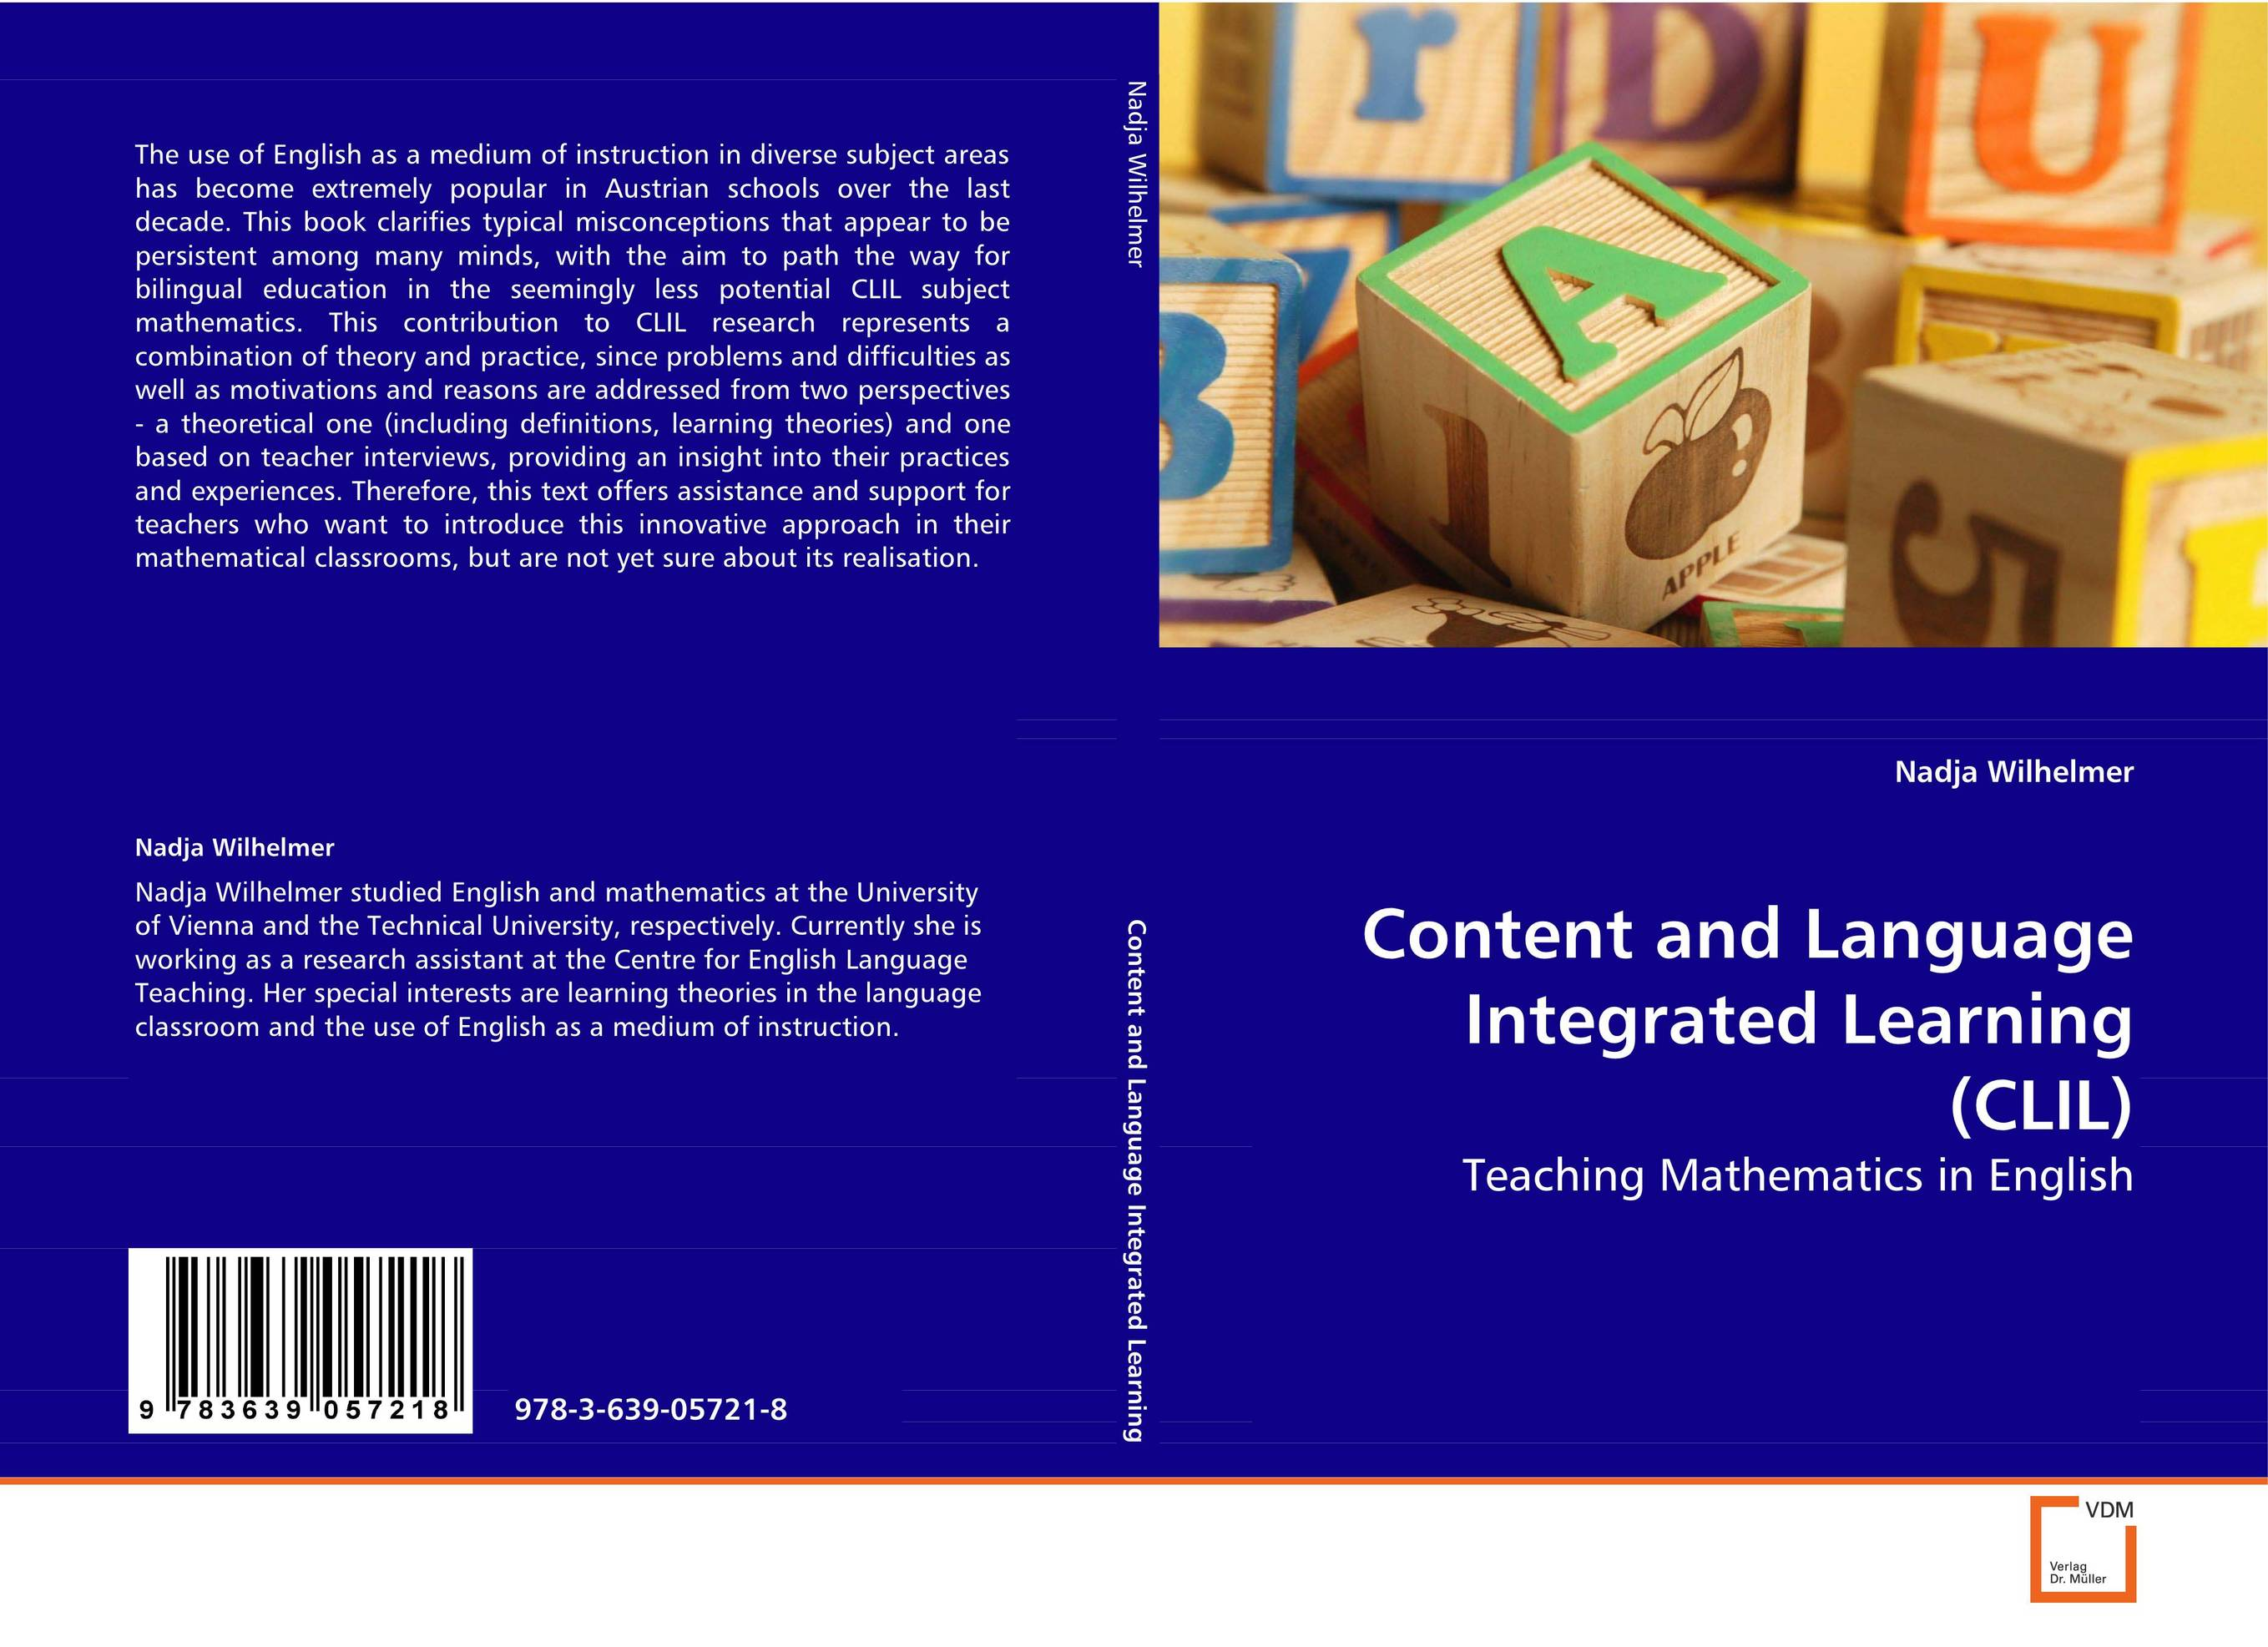 Content and Language Integrated Learning (CLIL) theories and practices of human resource management from quran